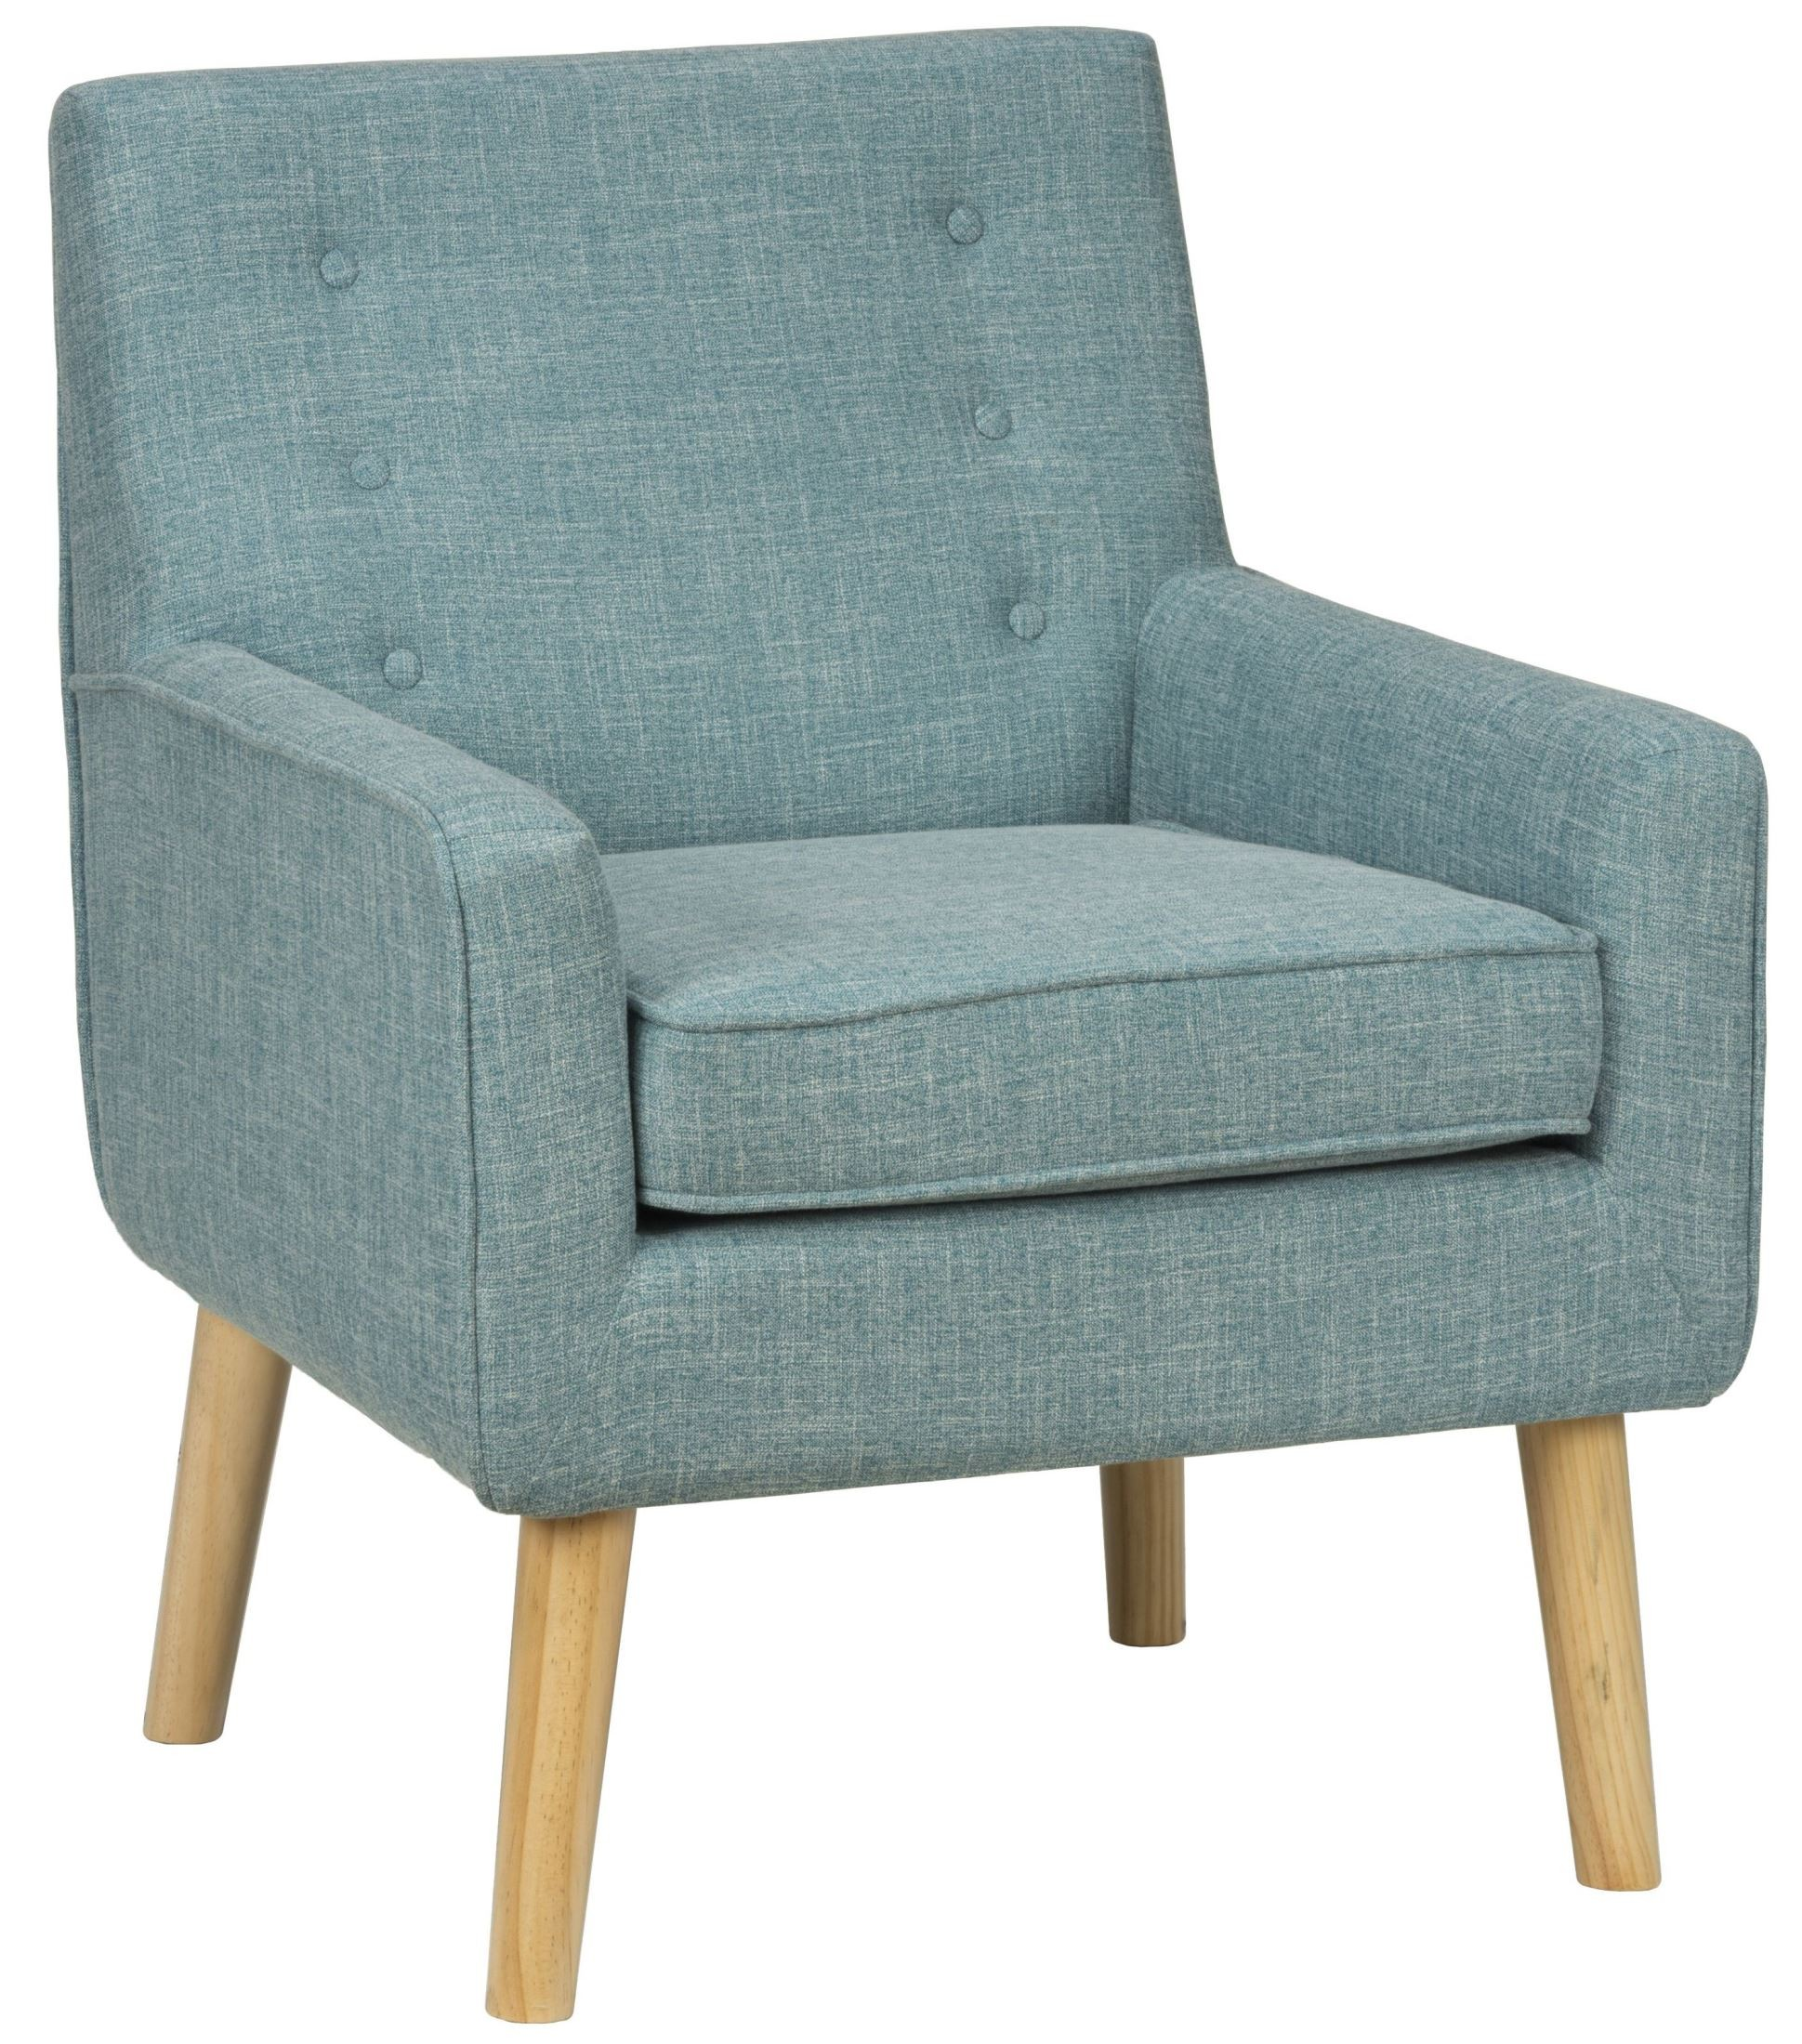 Peacock Blue Accent Chair Mila Mod Peacock Blue Accent Chair From Jofran Coleman